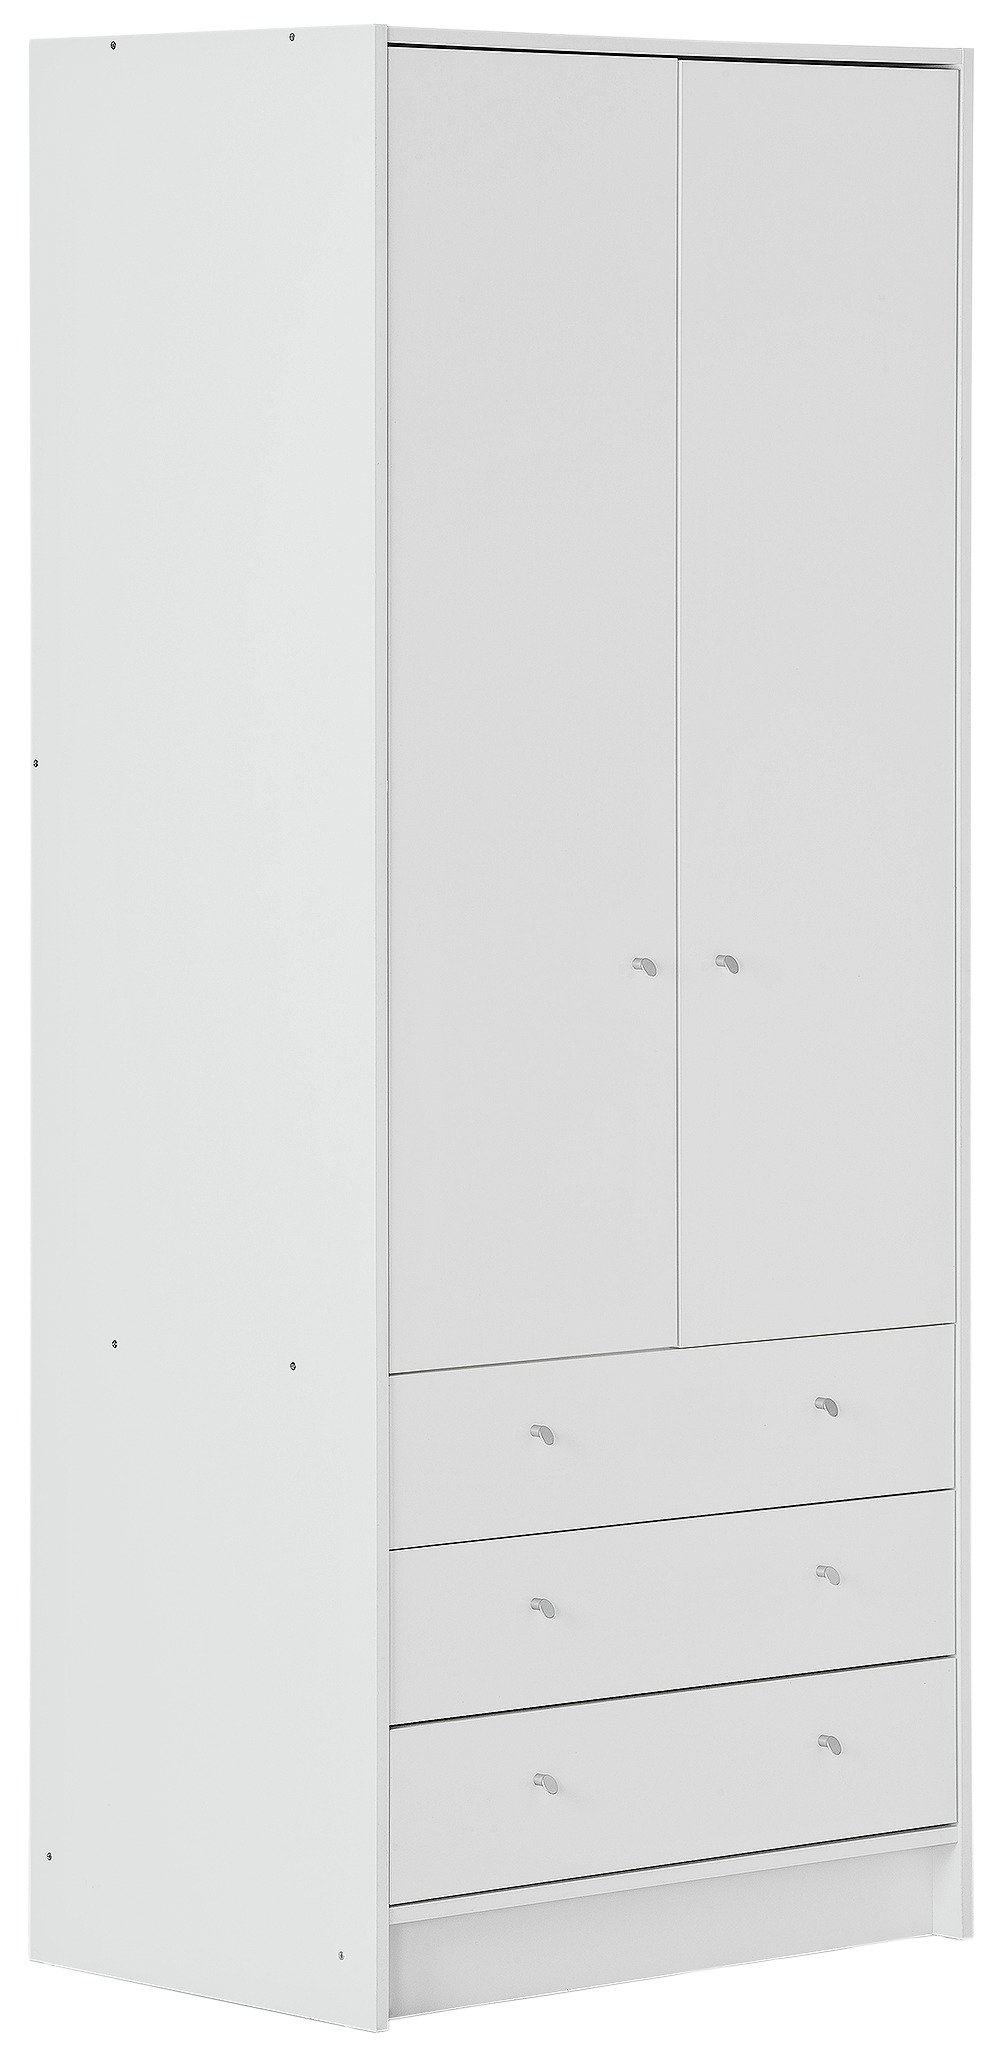 Argos Home Malibu White Gloss 2 Door 3 Drawer Wardrobe